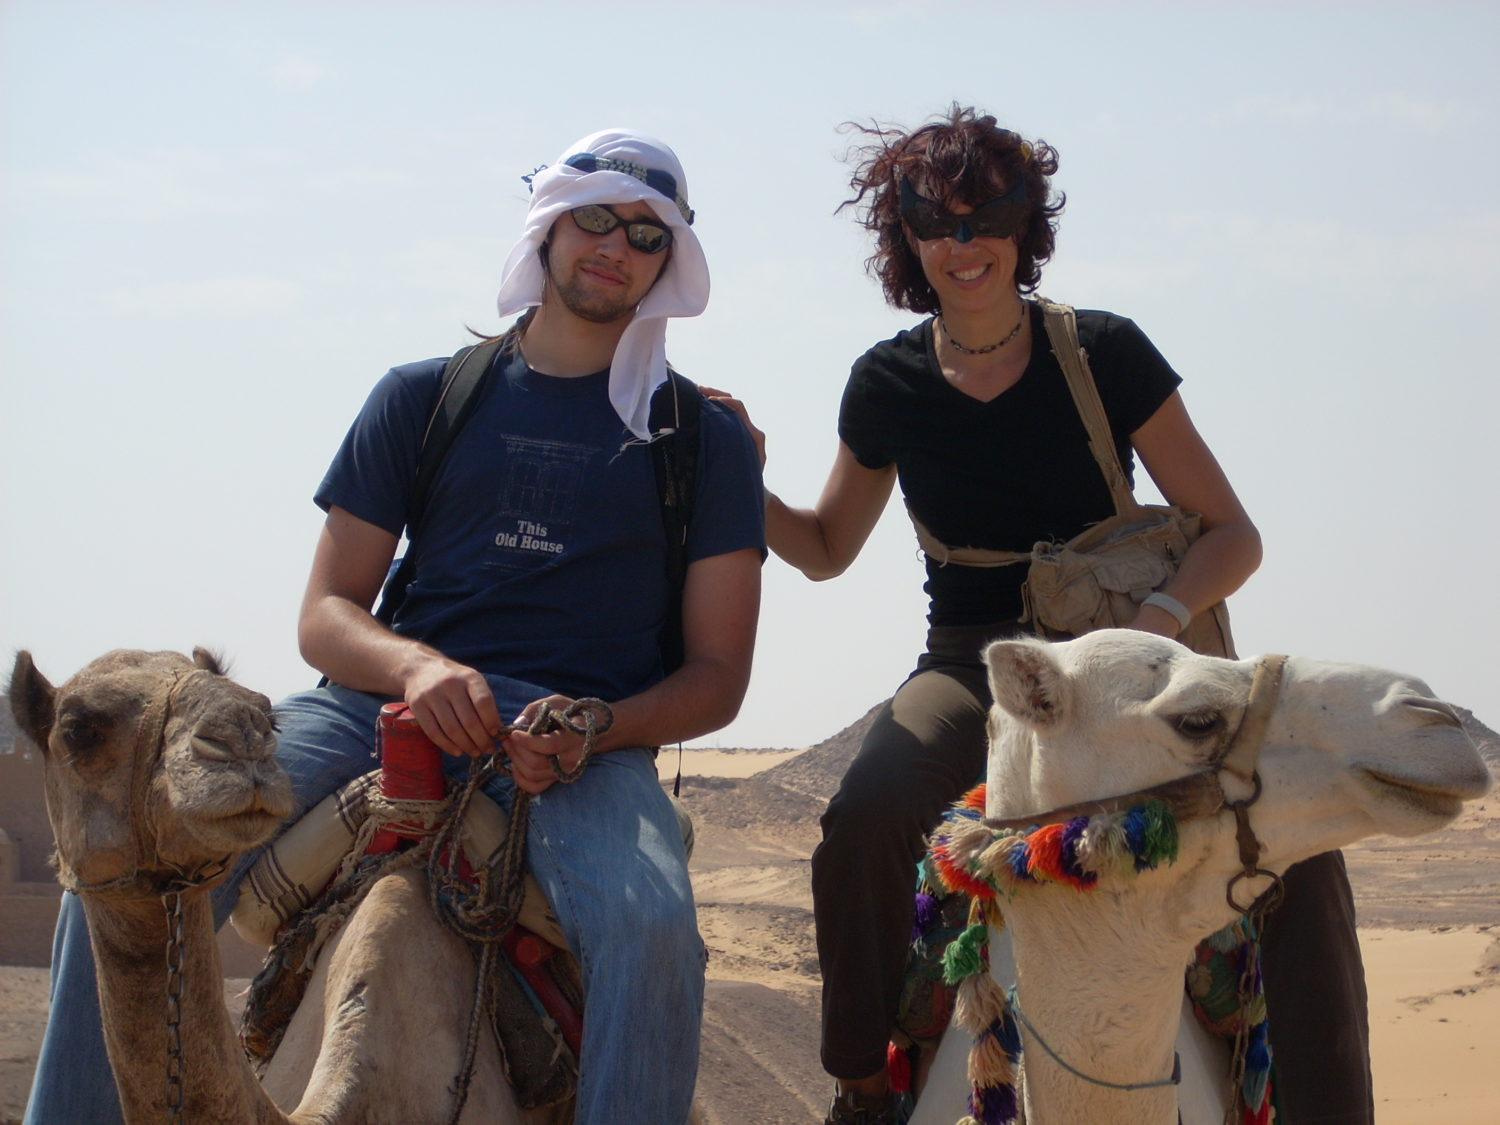 hol and chris on camels